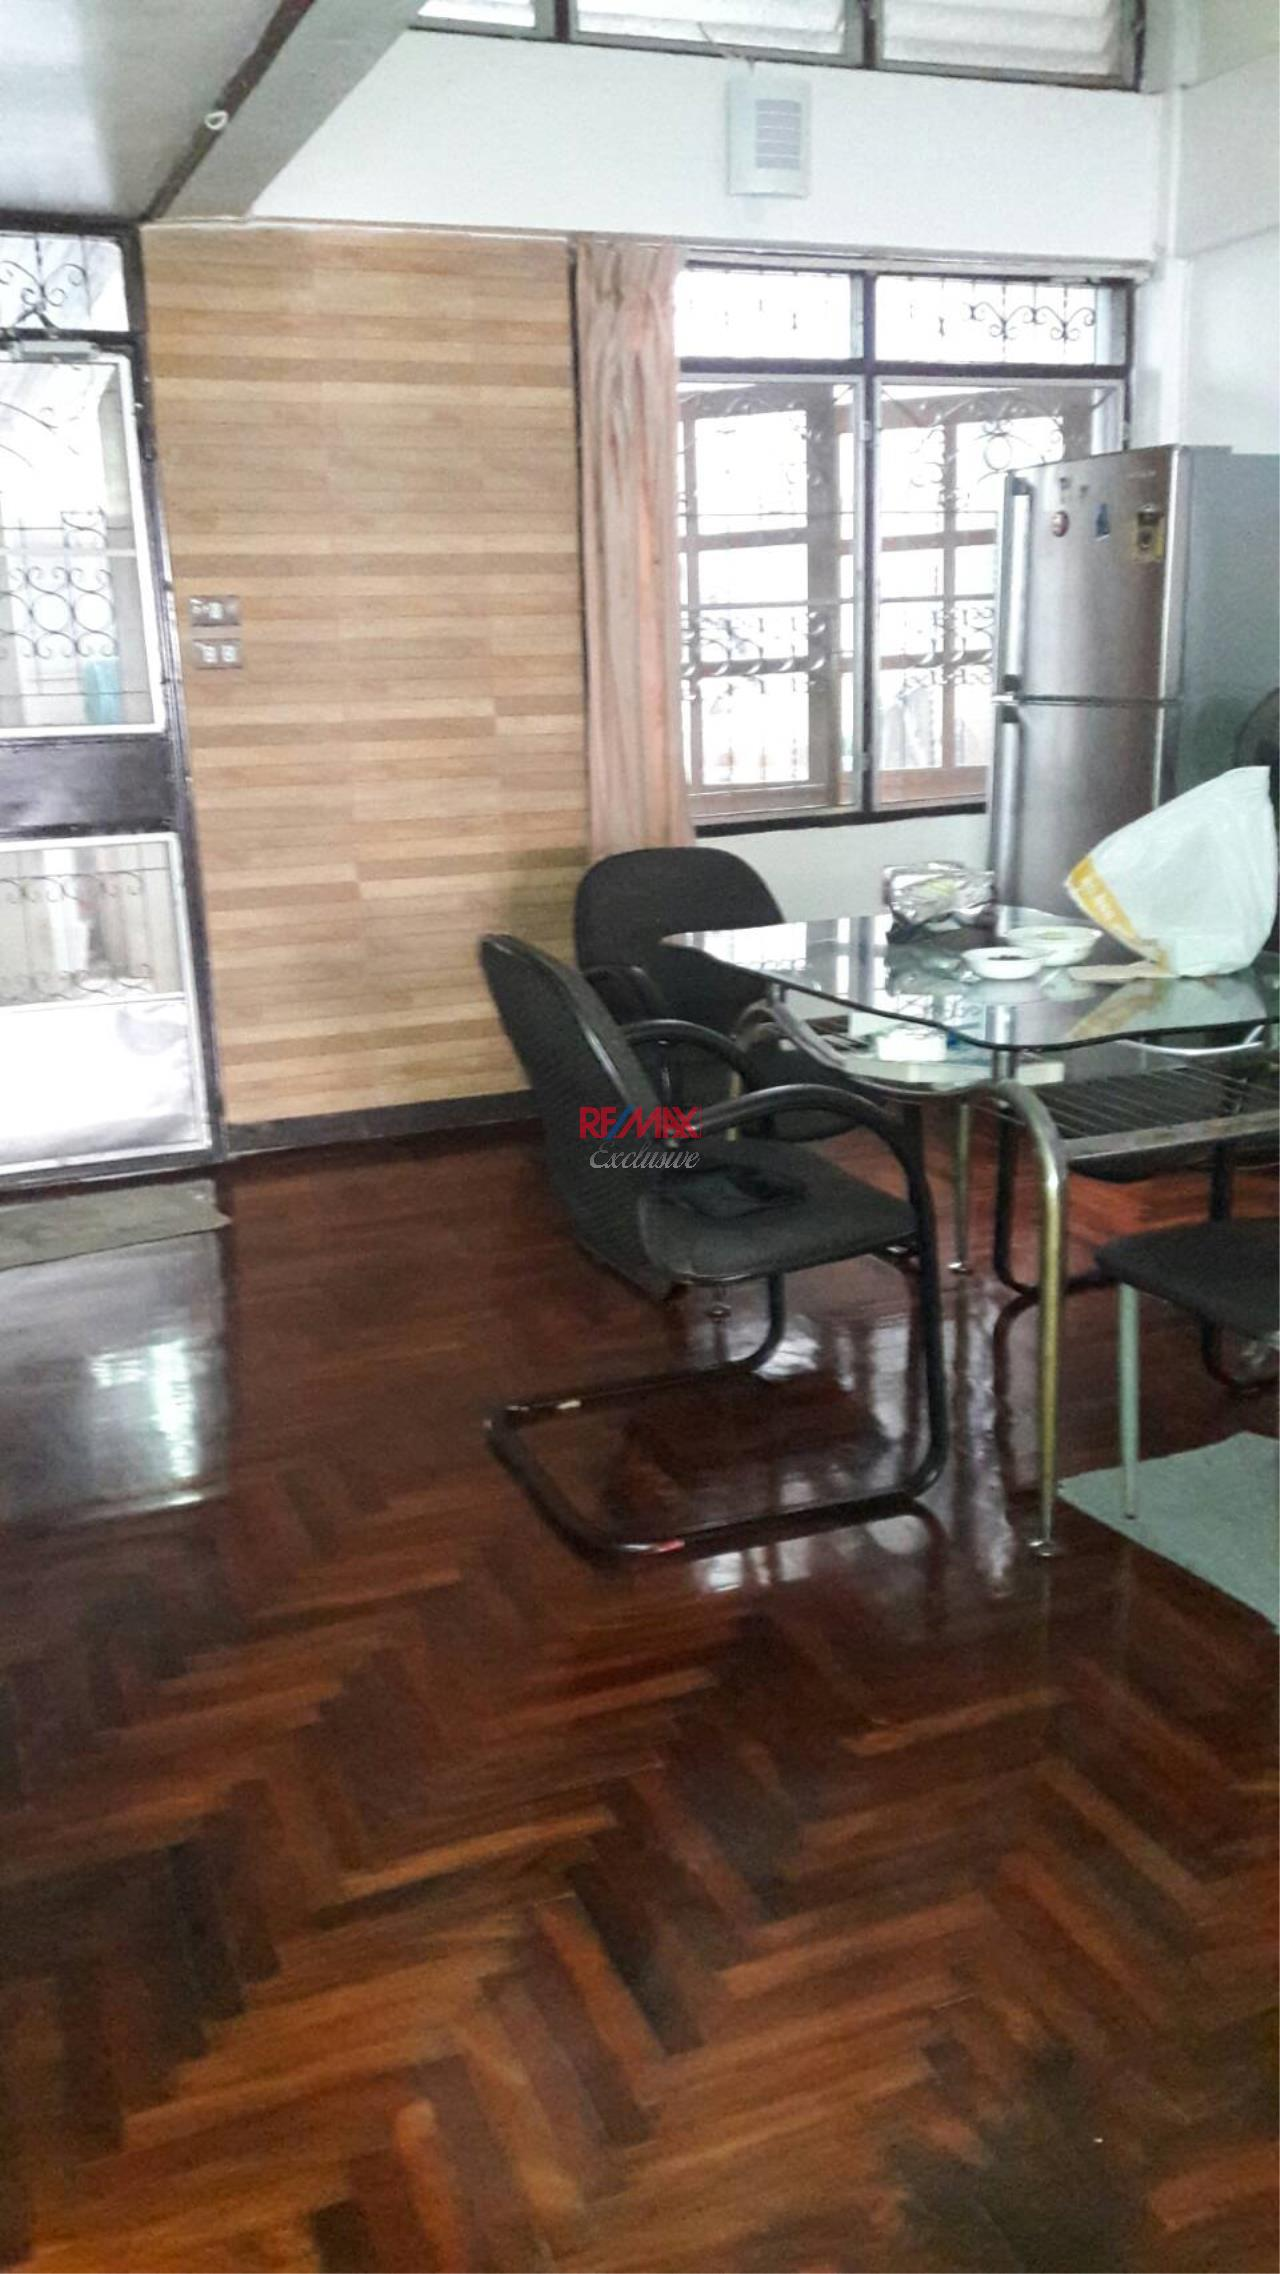 RE/MAX Exclusive Agency's Townhouse for Office or Business Purpose for Rent!! 1